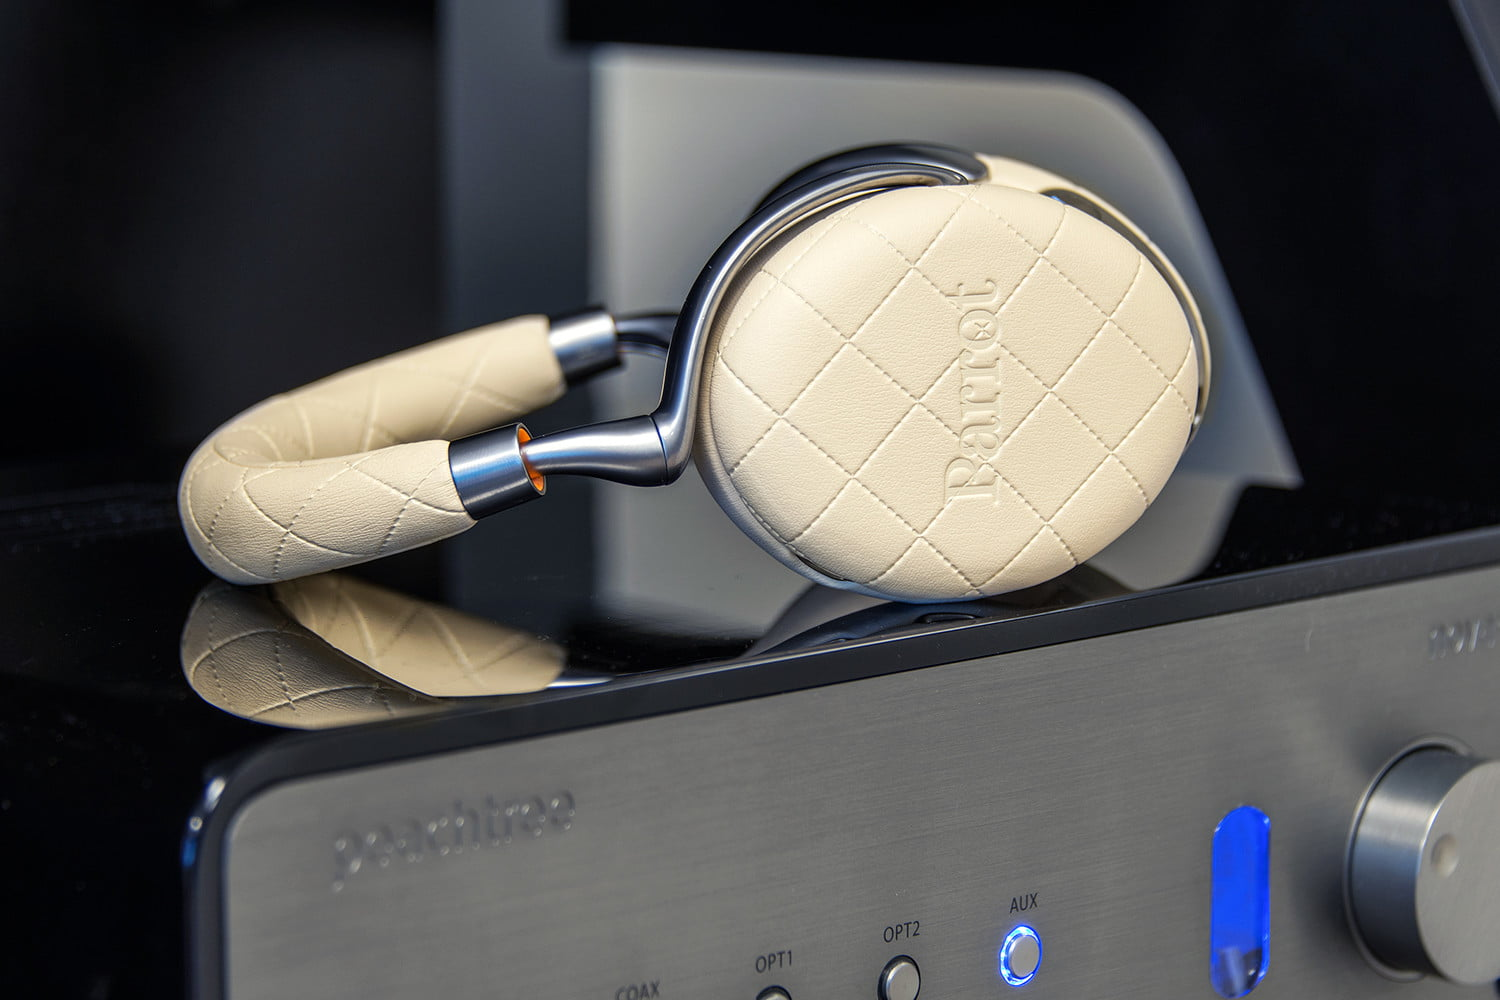 Parrot Zik 3 Review Wireless Noise Cancelling Headphones Digital Stereo Headphone Jack Wiring Diagram Besides 5mm Audio Even When Things Get Fuzzier Via Bluetooth Connection The Really Hold Their Own At Price Point It Comes To Delineating Finer Details Of